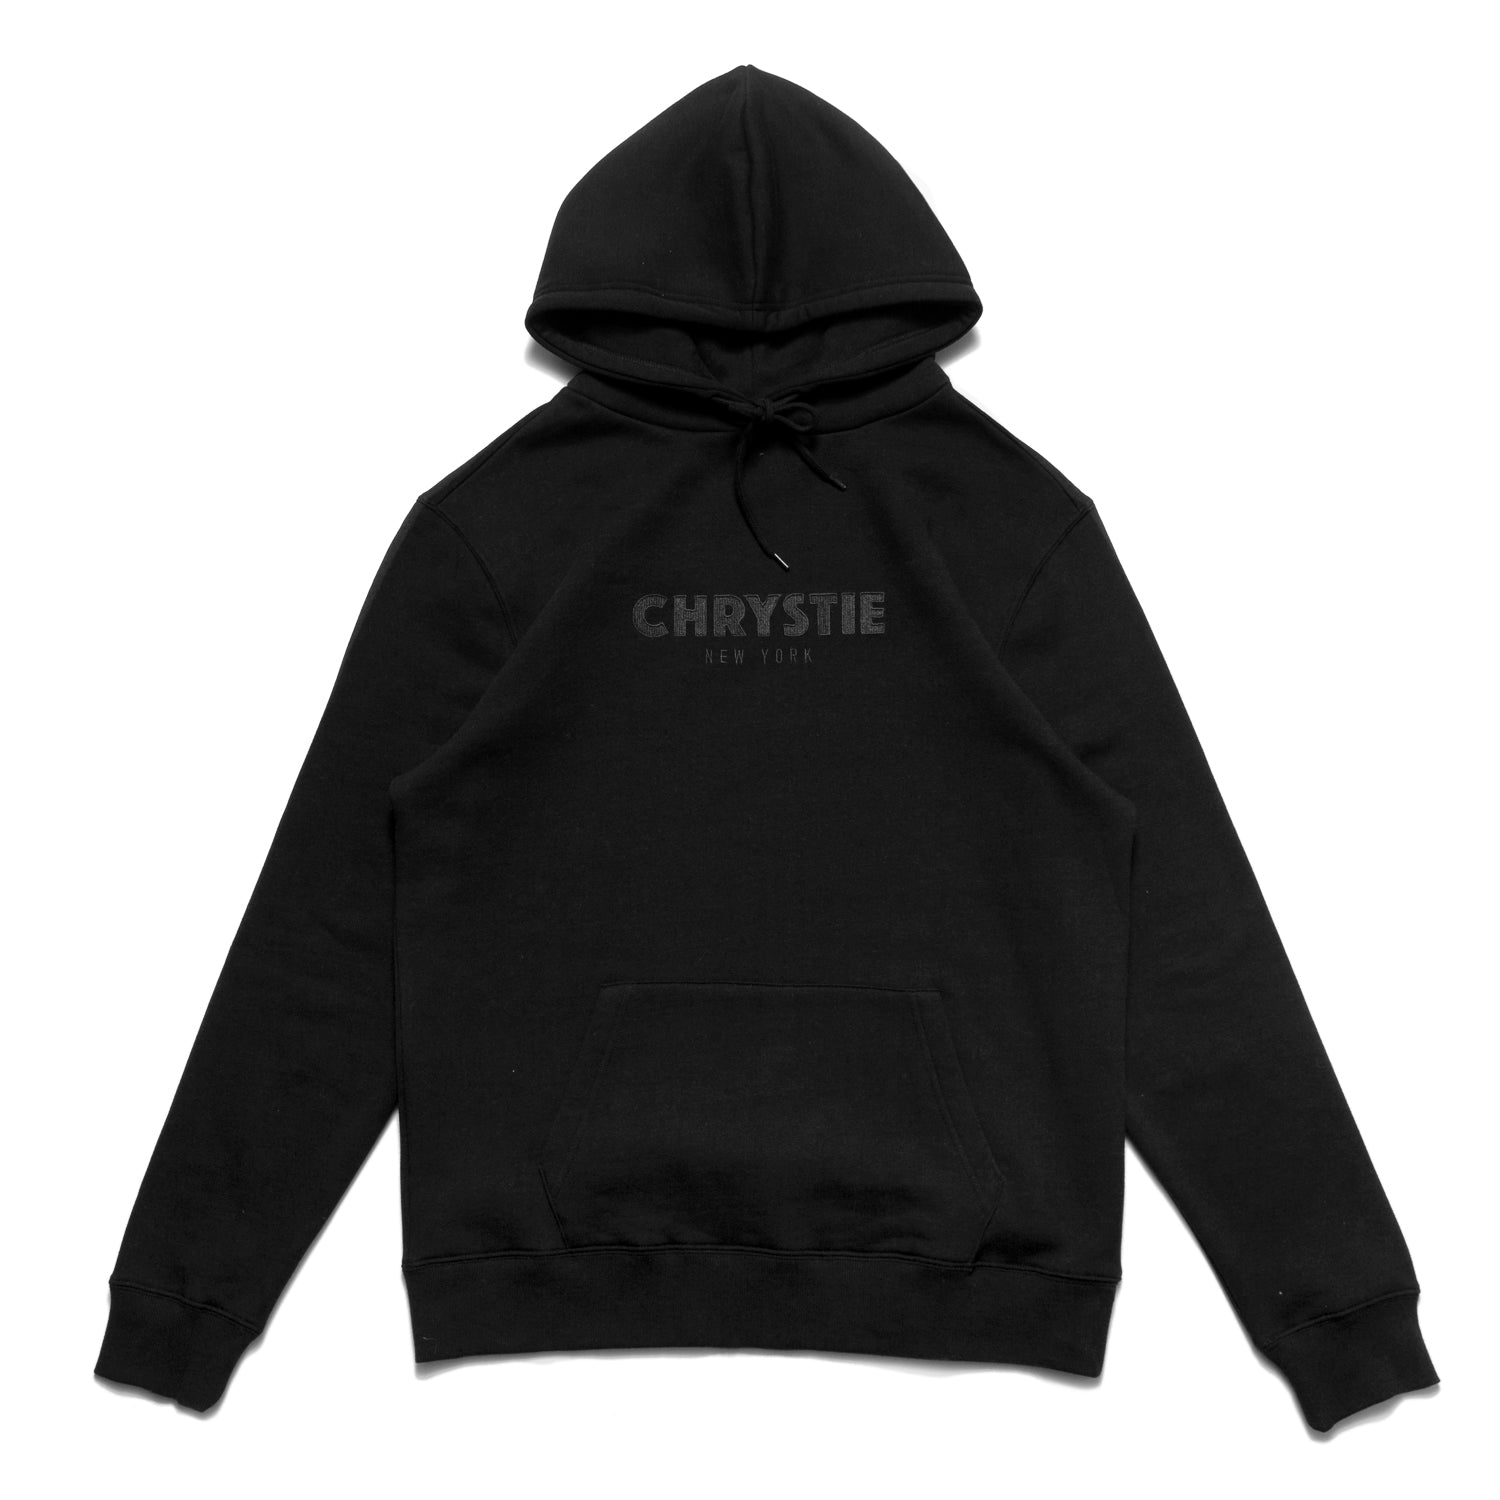 Load image into Gallery viewer, Chrystie OG Logo Embroidered Hoodies